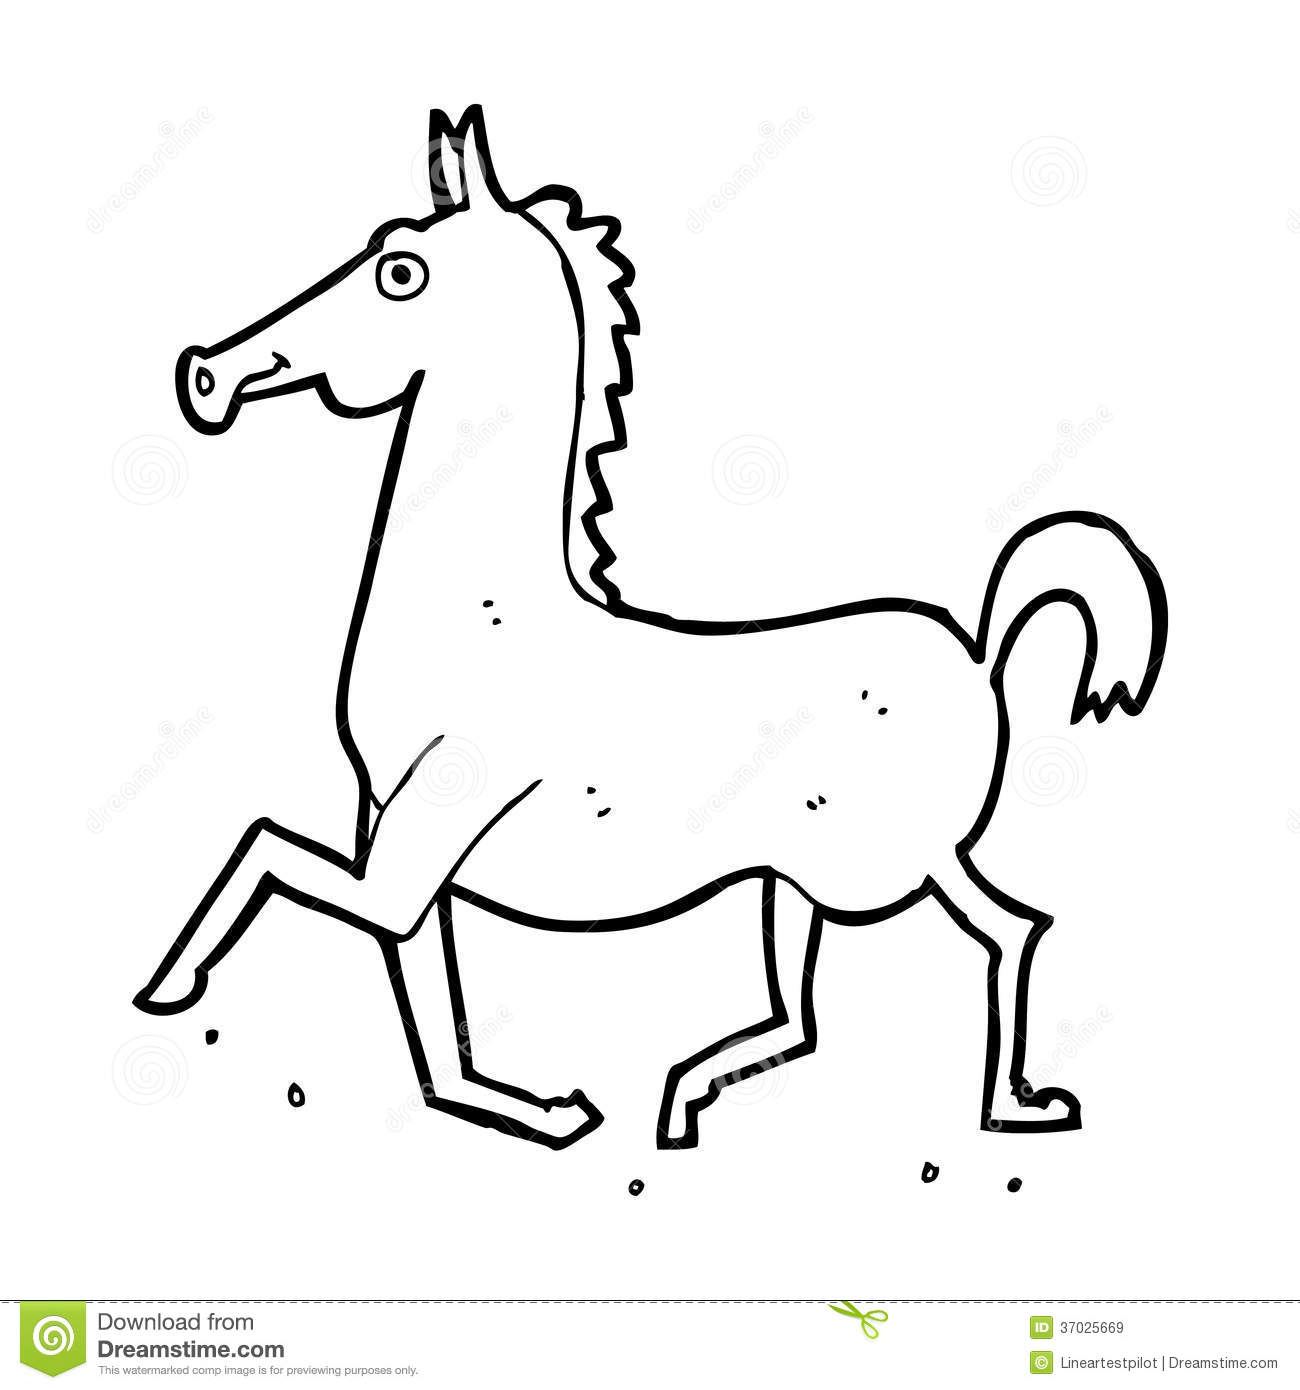 Horse cartoon black and white